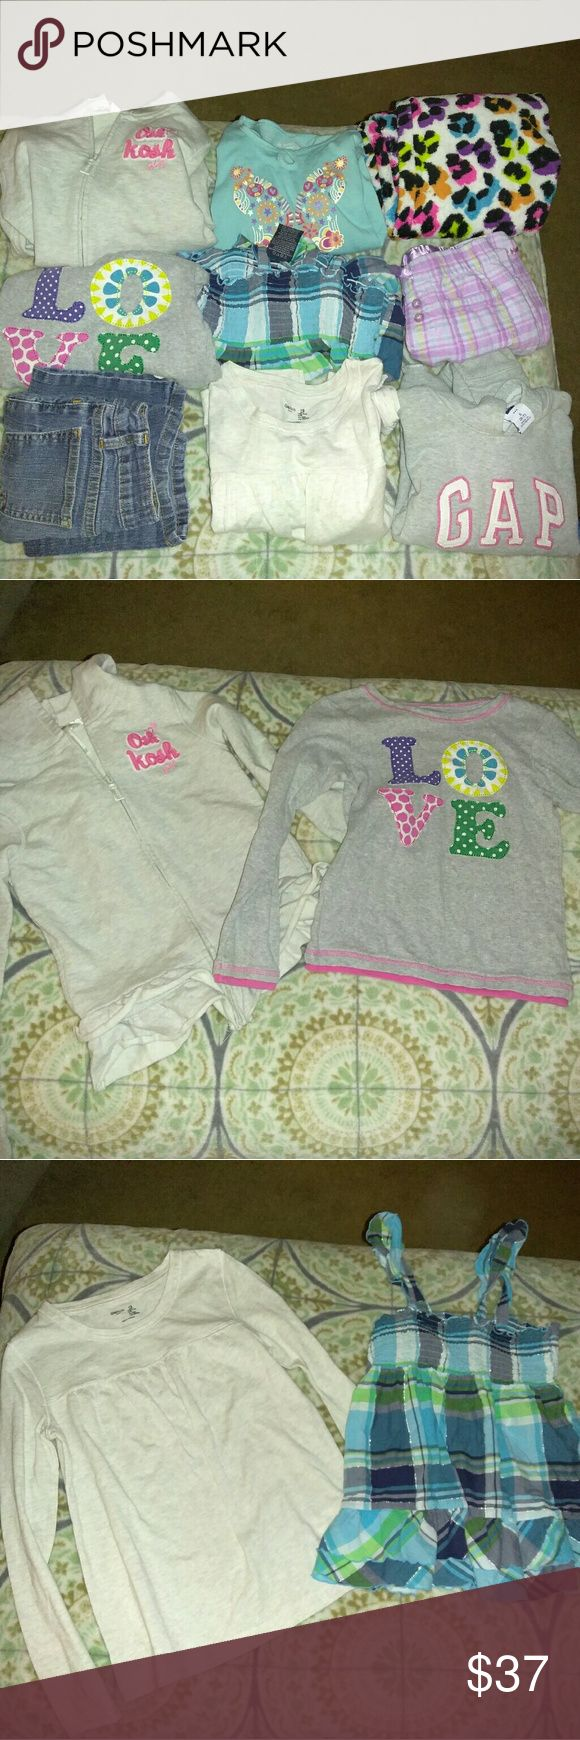 (9) 6-6x girls clothes The second picture is a Oshkosh jacket and a long sleeve Carter's Shirt. Both size 6x.  The third picture is one tank top and gap long sleeve 6 and 6x..   the forth picture is an American girl long sleeve shirt size 6, and a gap hoodie size 6-7..  the fifth picture is 2 PJs and 1 blue jeans.  6 and 6x.     All in perfect condition all Other